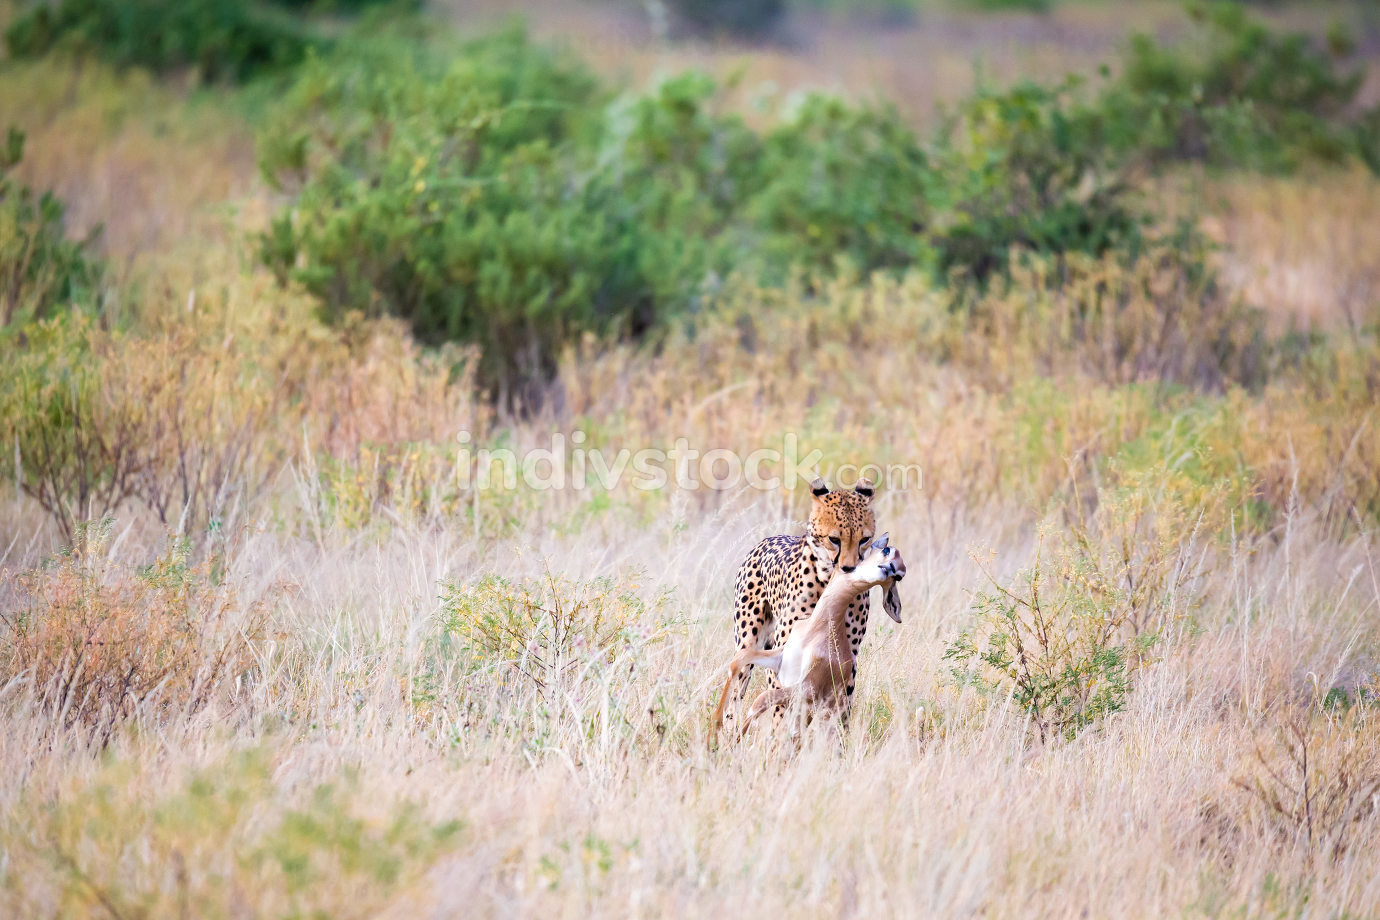 A cheetah carries the prey hunted in its mouth